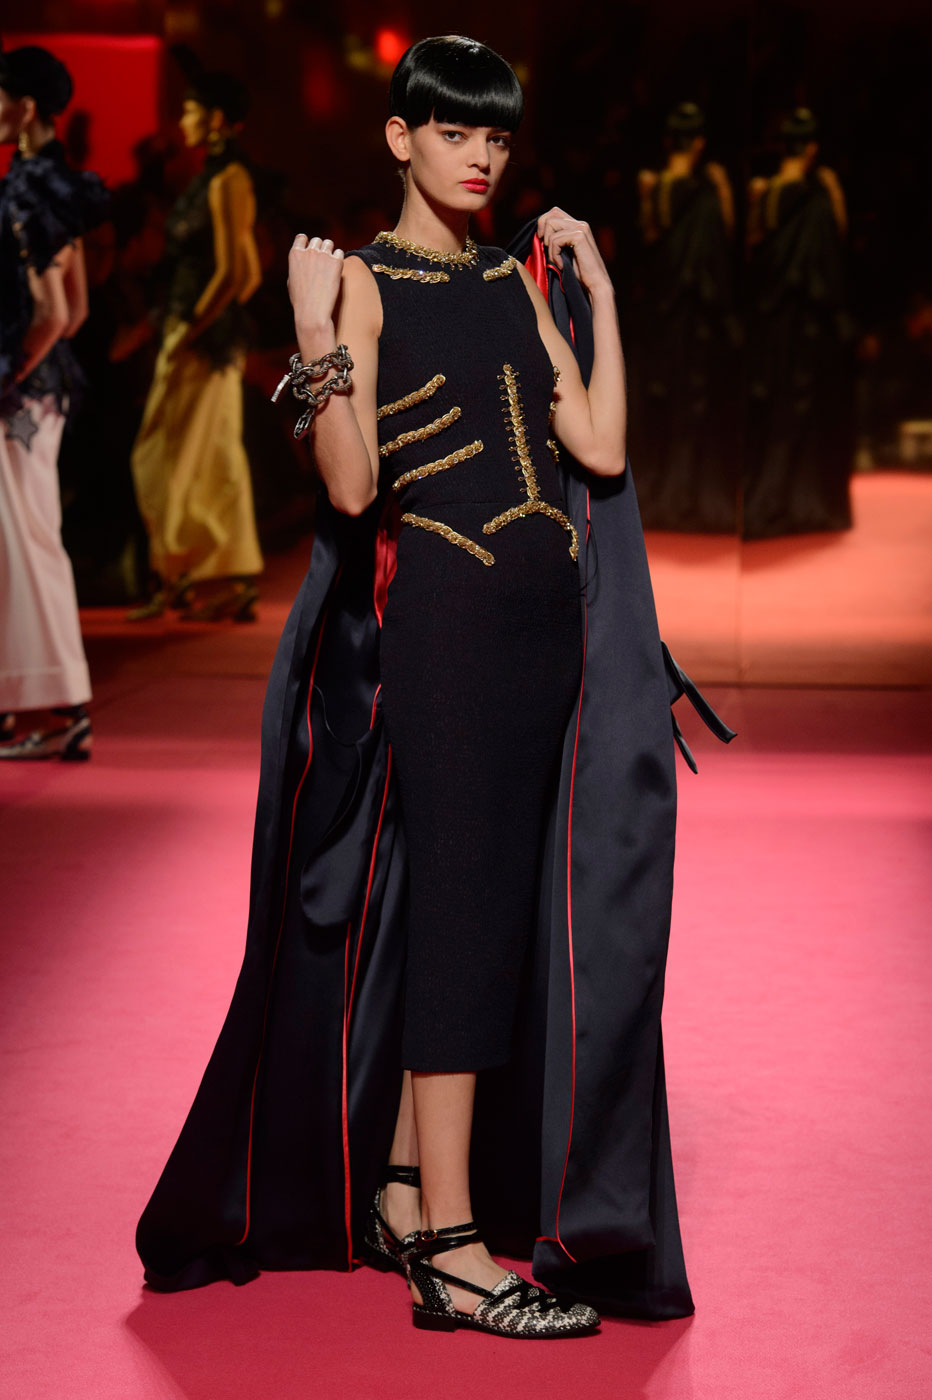 Schiaparelli-fashion-runway-show-haute-couture-paris-spring-summer-2015-the-impression-14